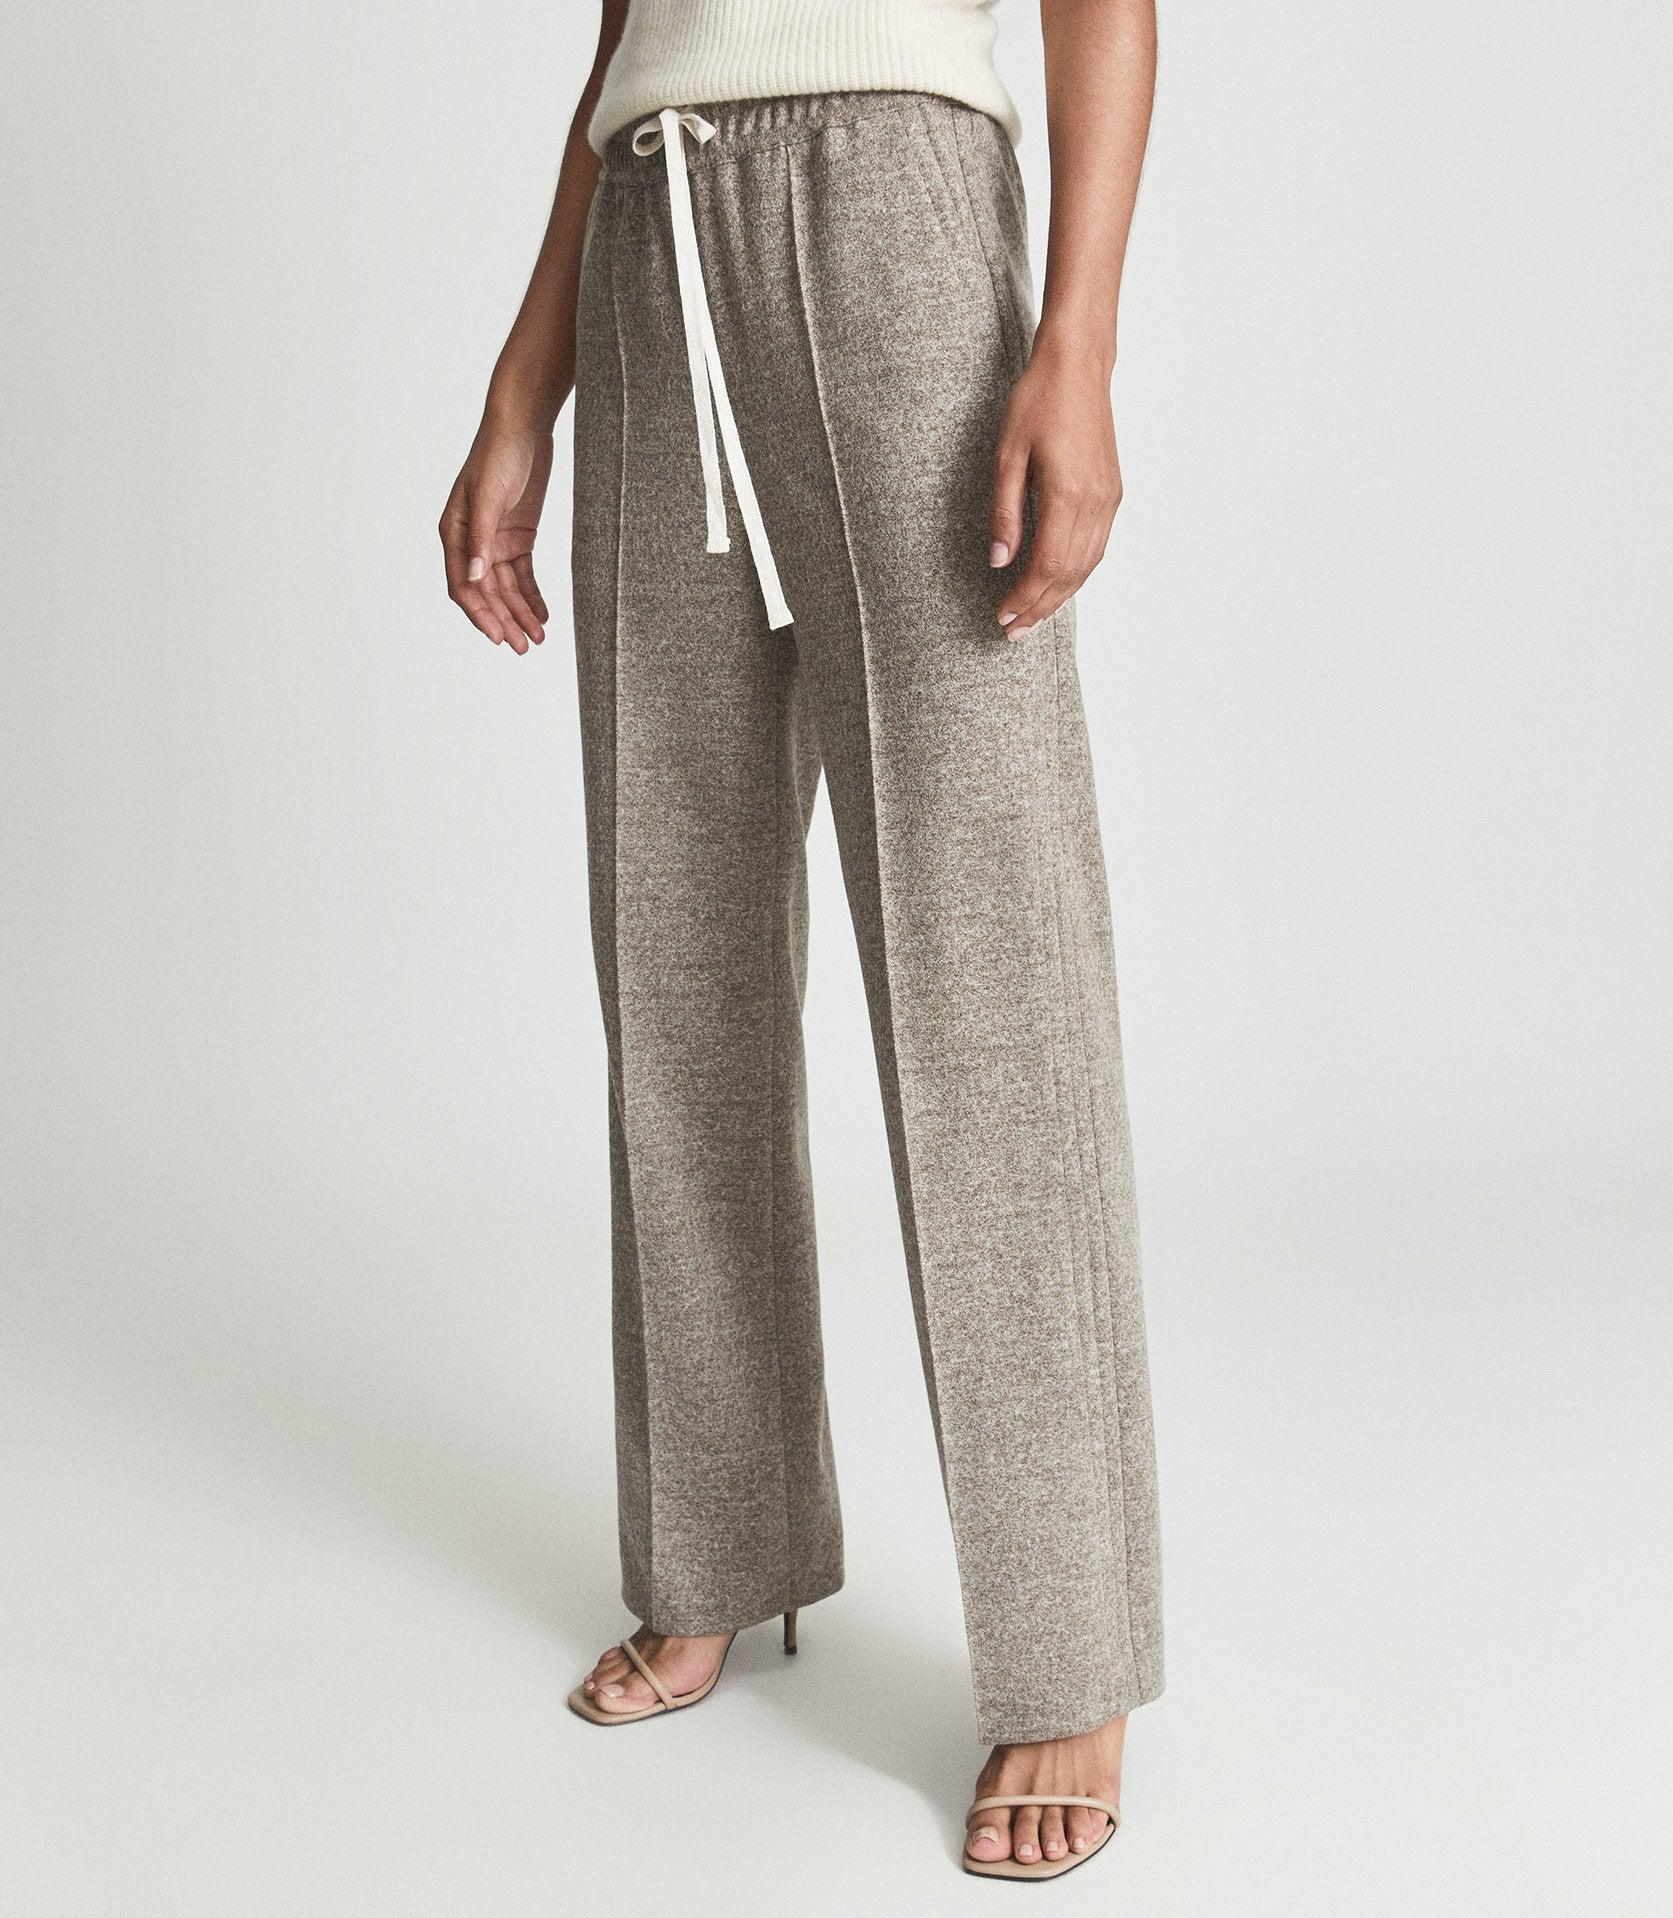 JOEY - TEXTURED WIDE LEG TROUSERS 2